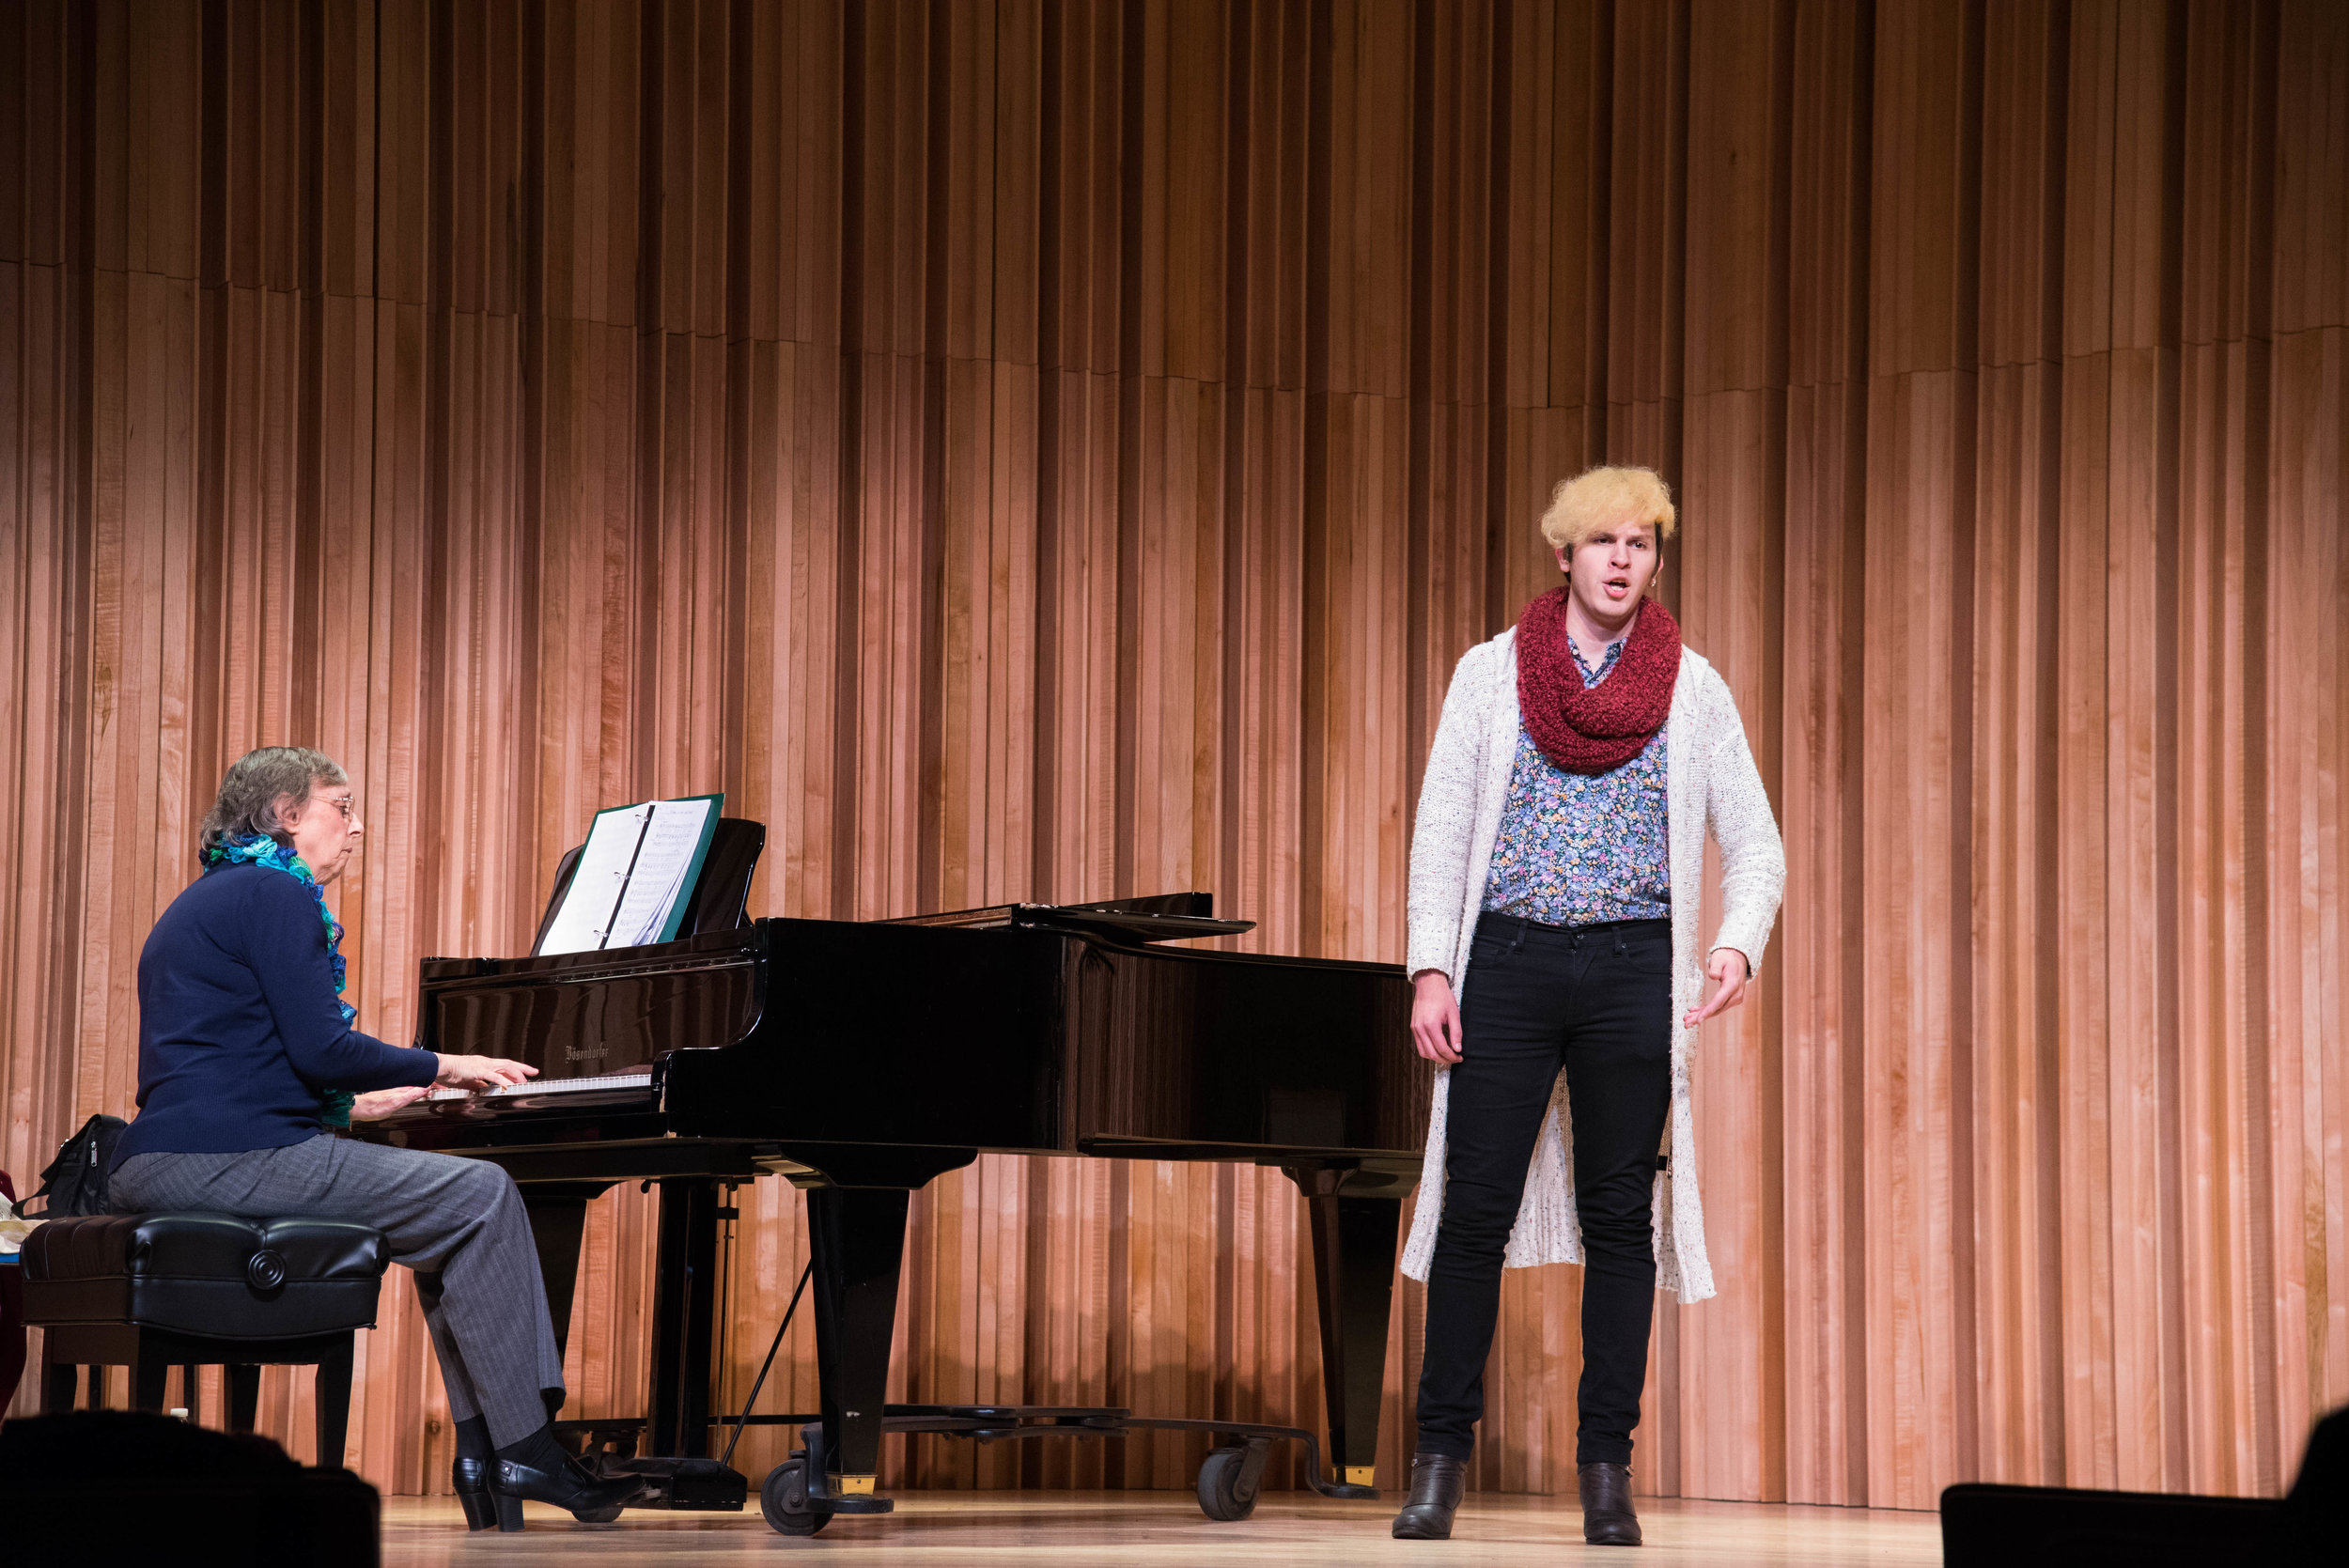 June Marano-Murray and Loki DeAngelis perform. Photo: Tim Miller.